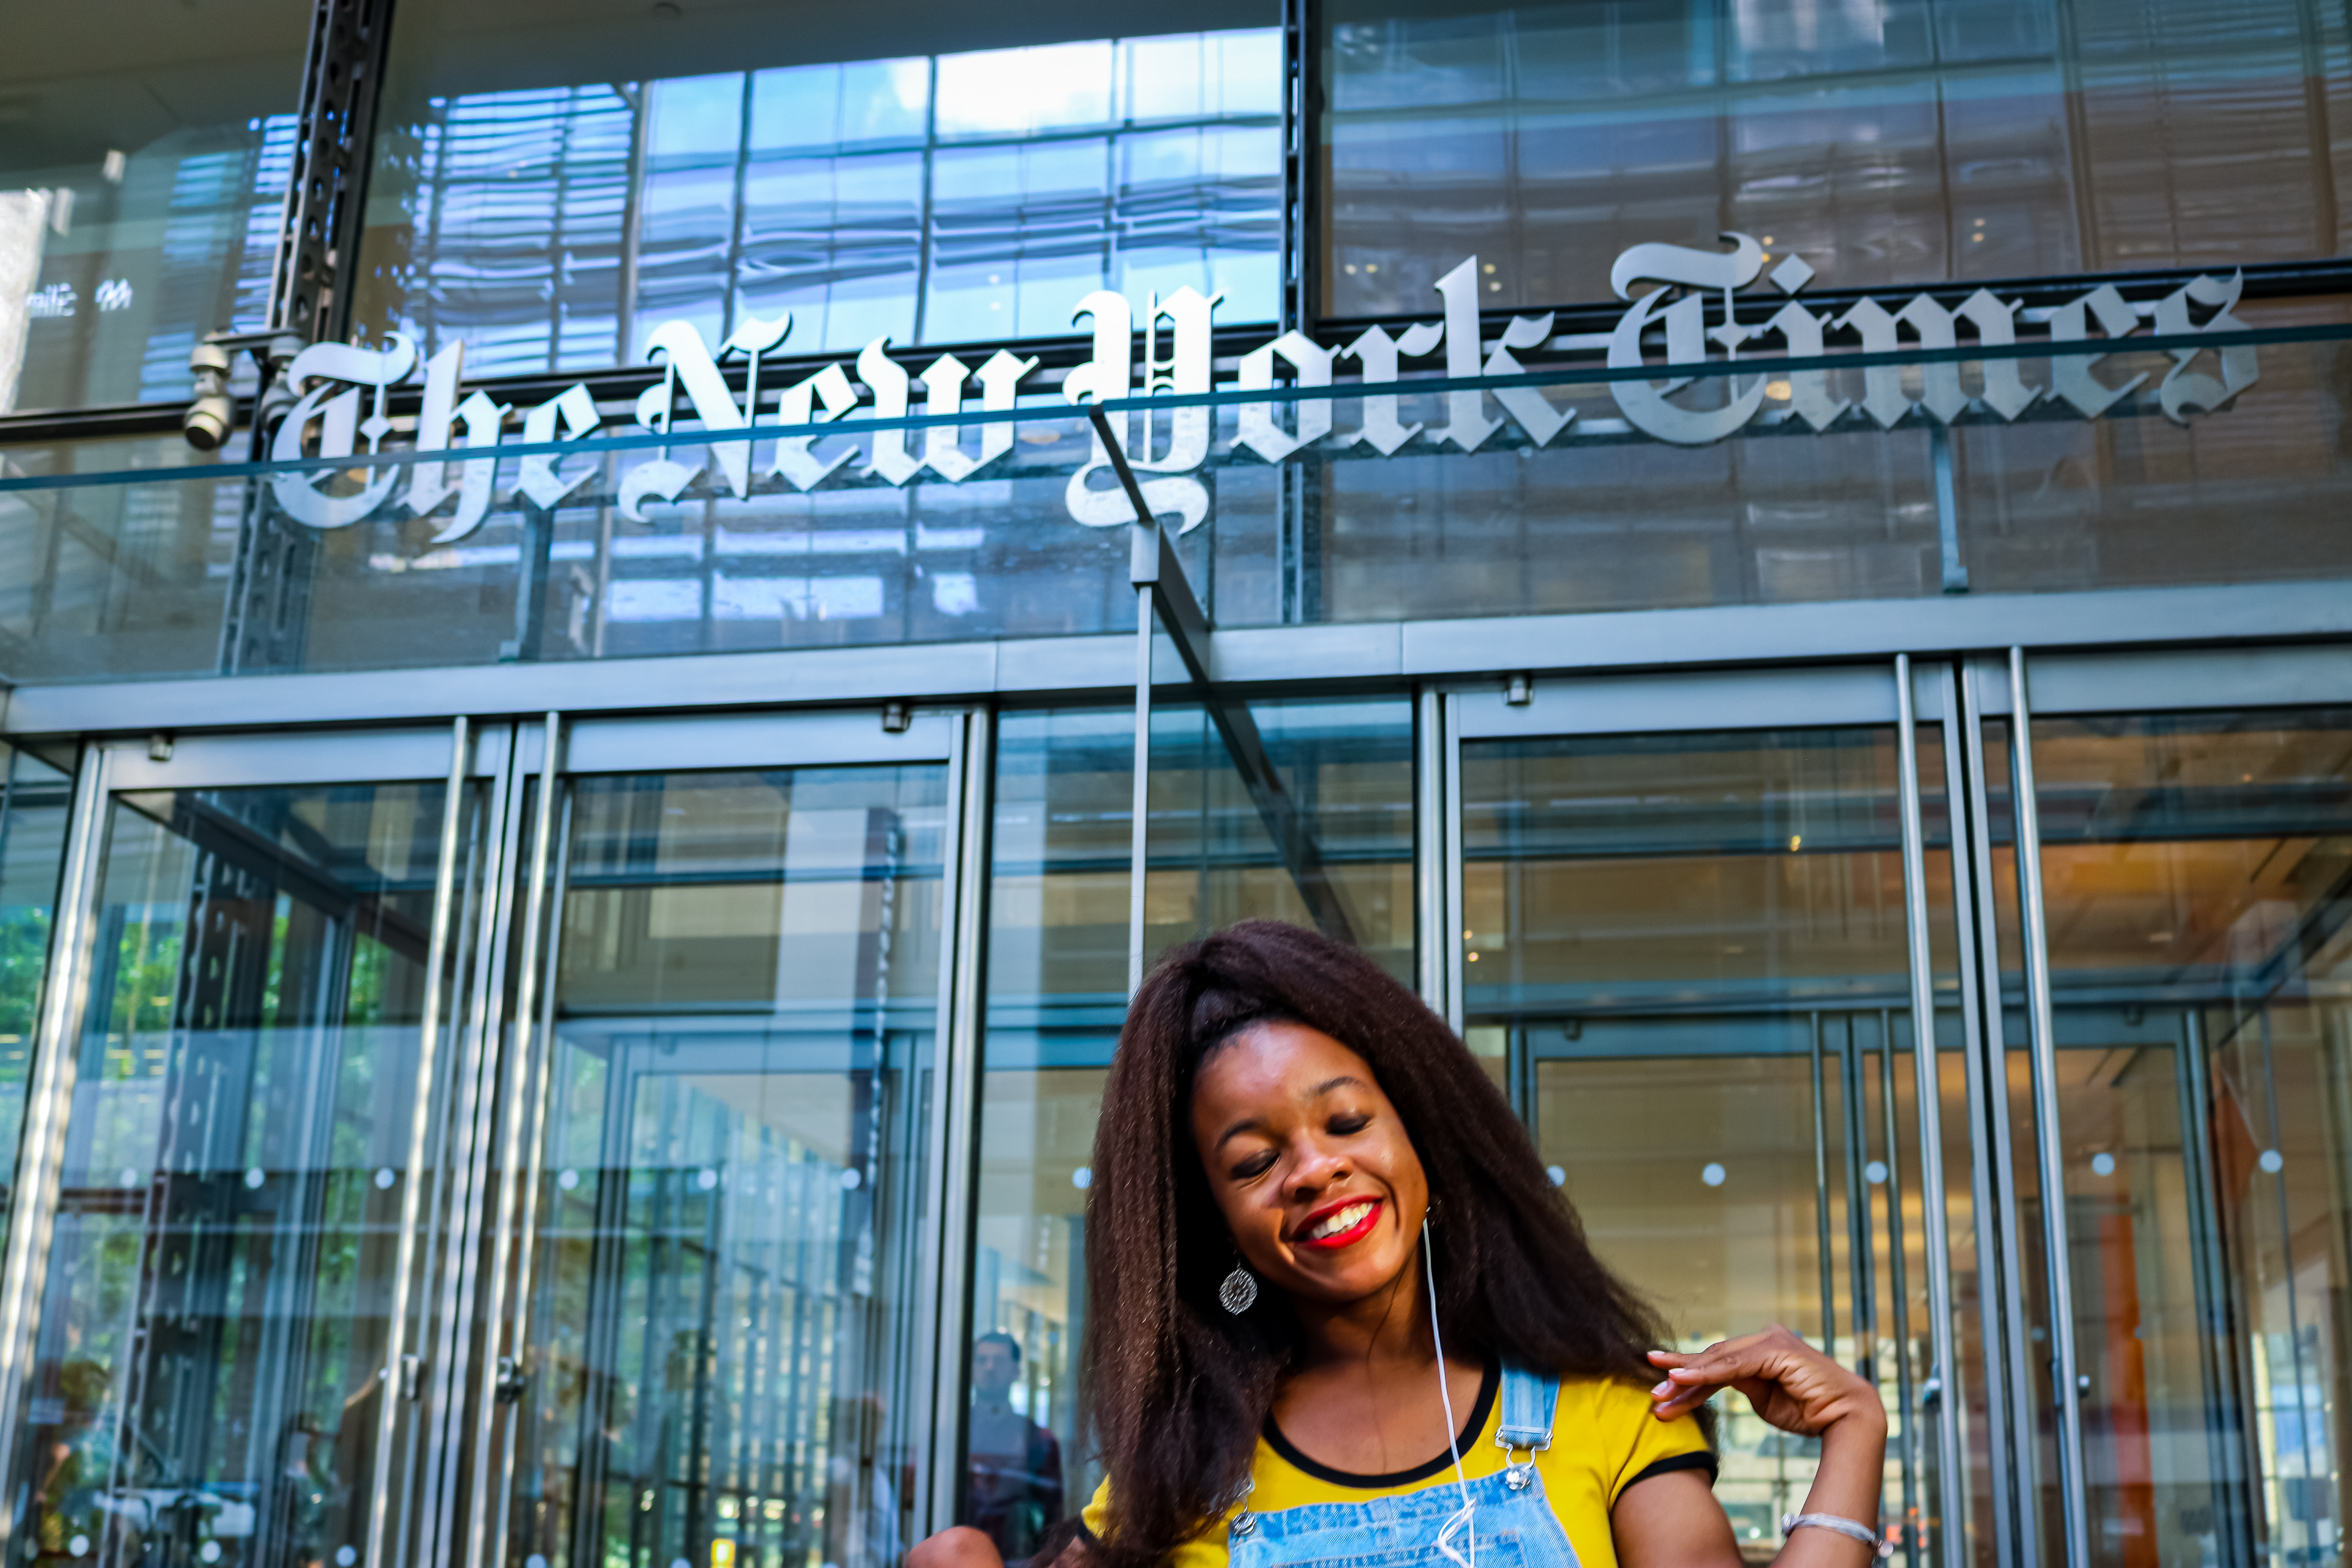 Rachy in front of New York Times building